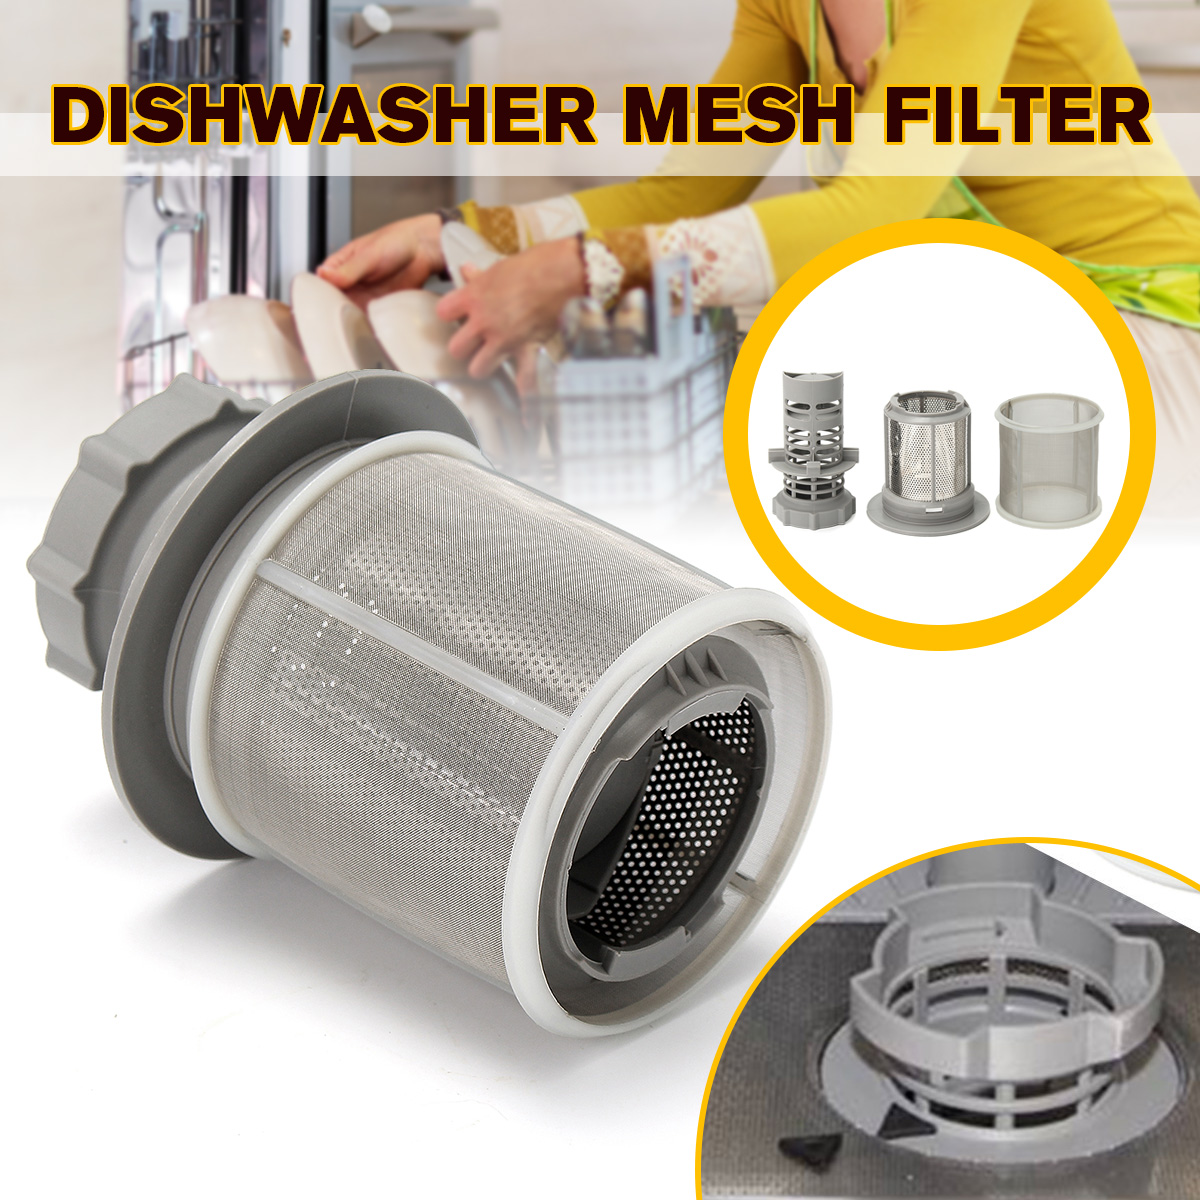 2 Part Dishwasher Mesh Filter Set Grey PP + Stainless Steel For Bosch Dishwasher 427903 170740 Series Replacement for Dishwasher new arrival pp brown coffee m achine stainless steel mesh conical solid liquid separation filter